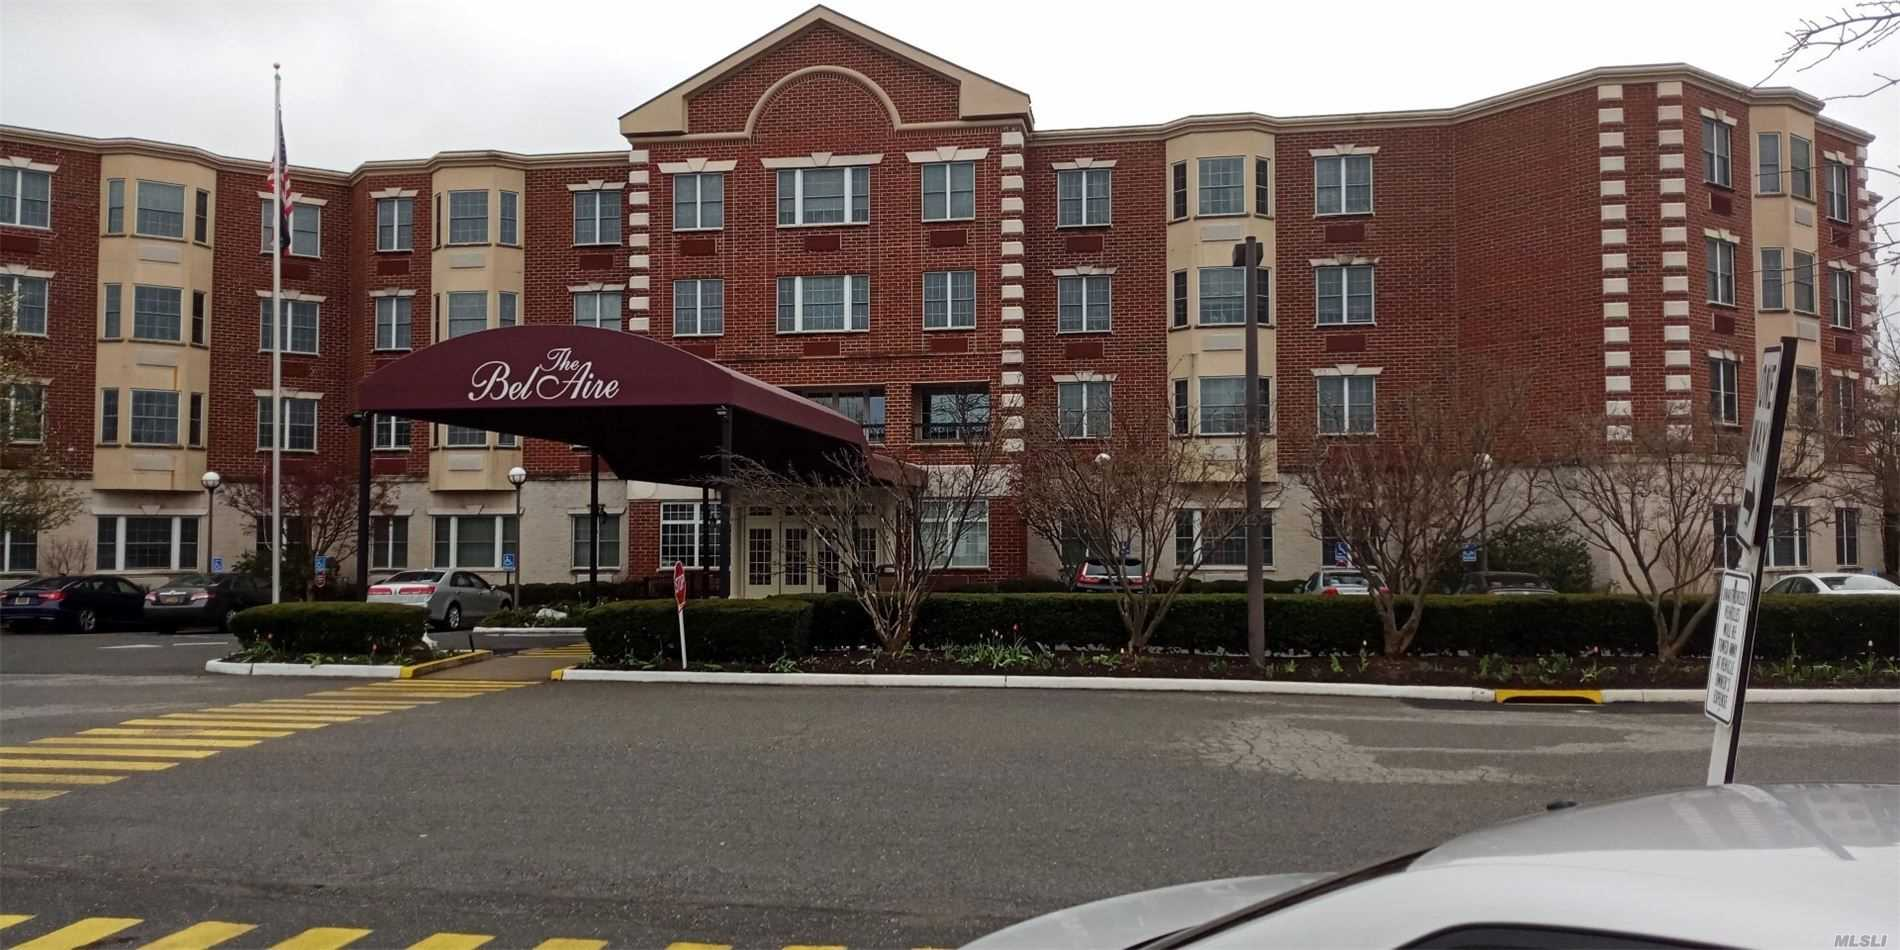 Property for sale at 50 Merrick Avenue # 112, East Meadow NY 11554, East Meadow,  New York 11554